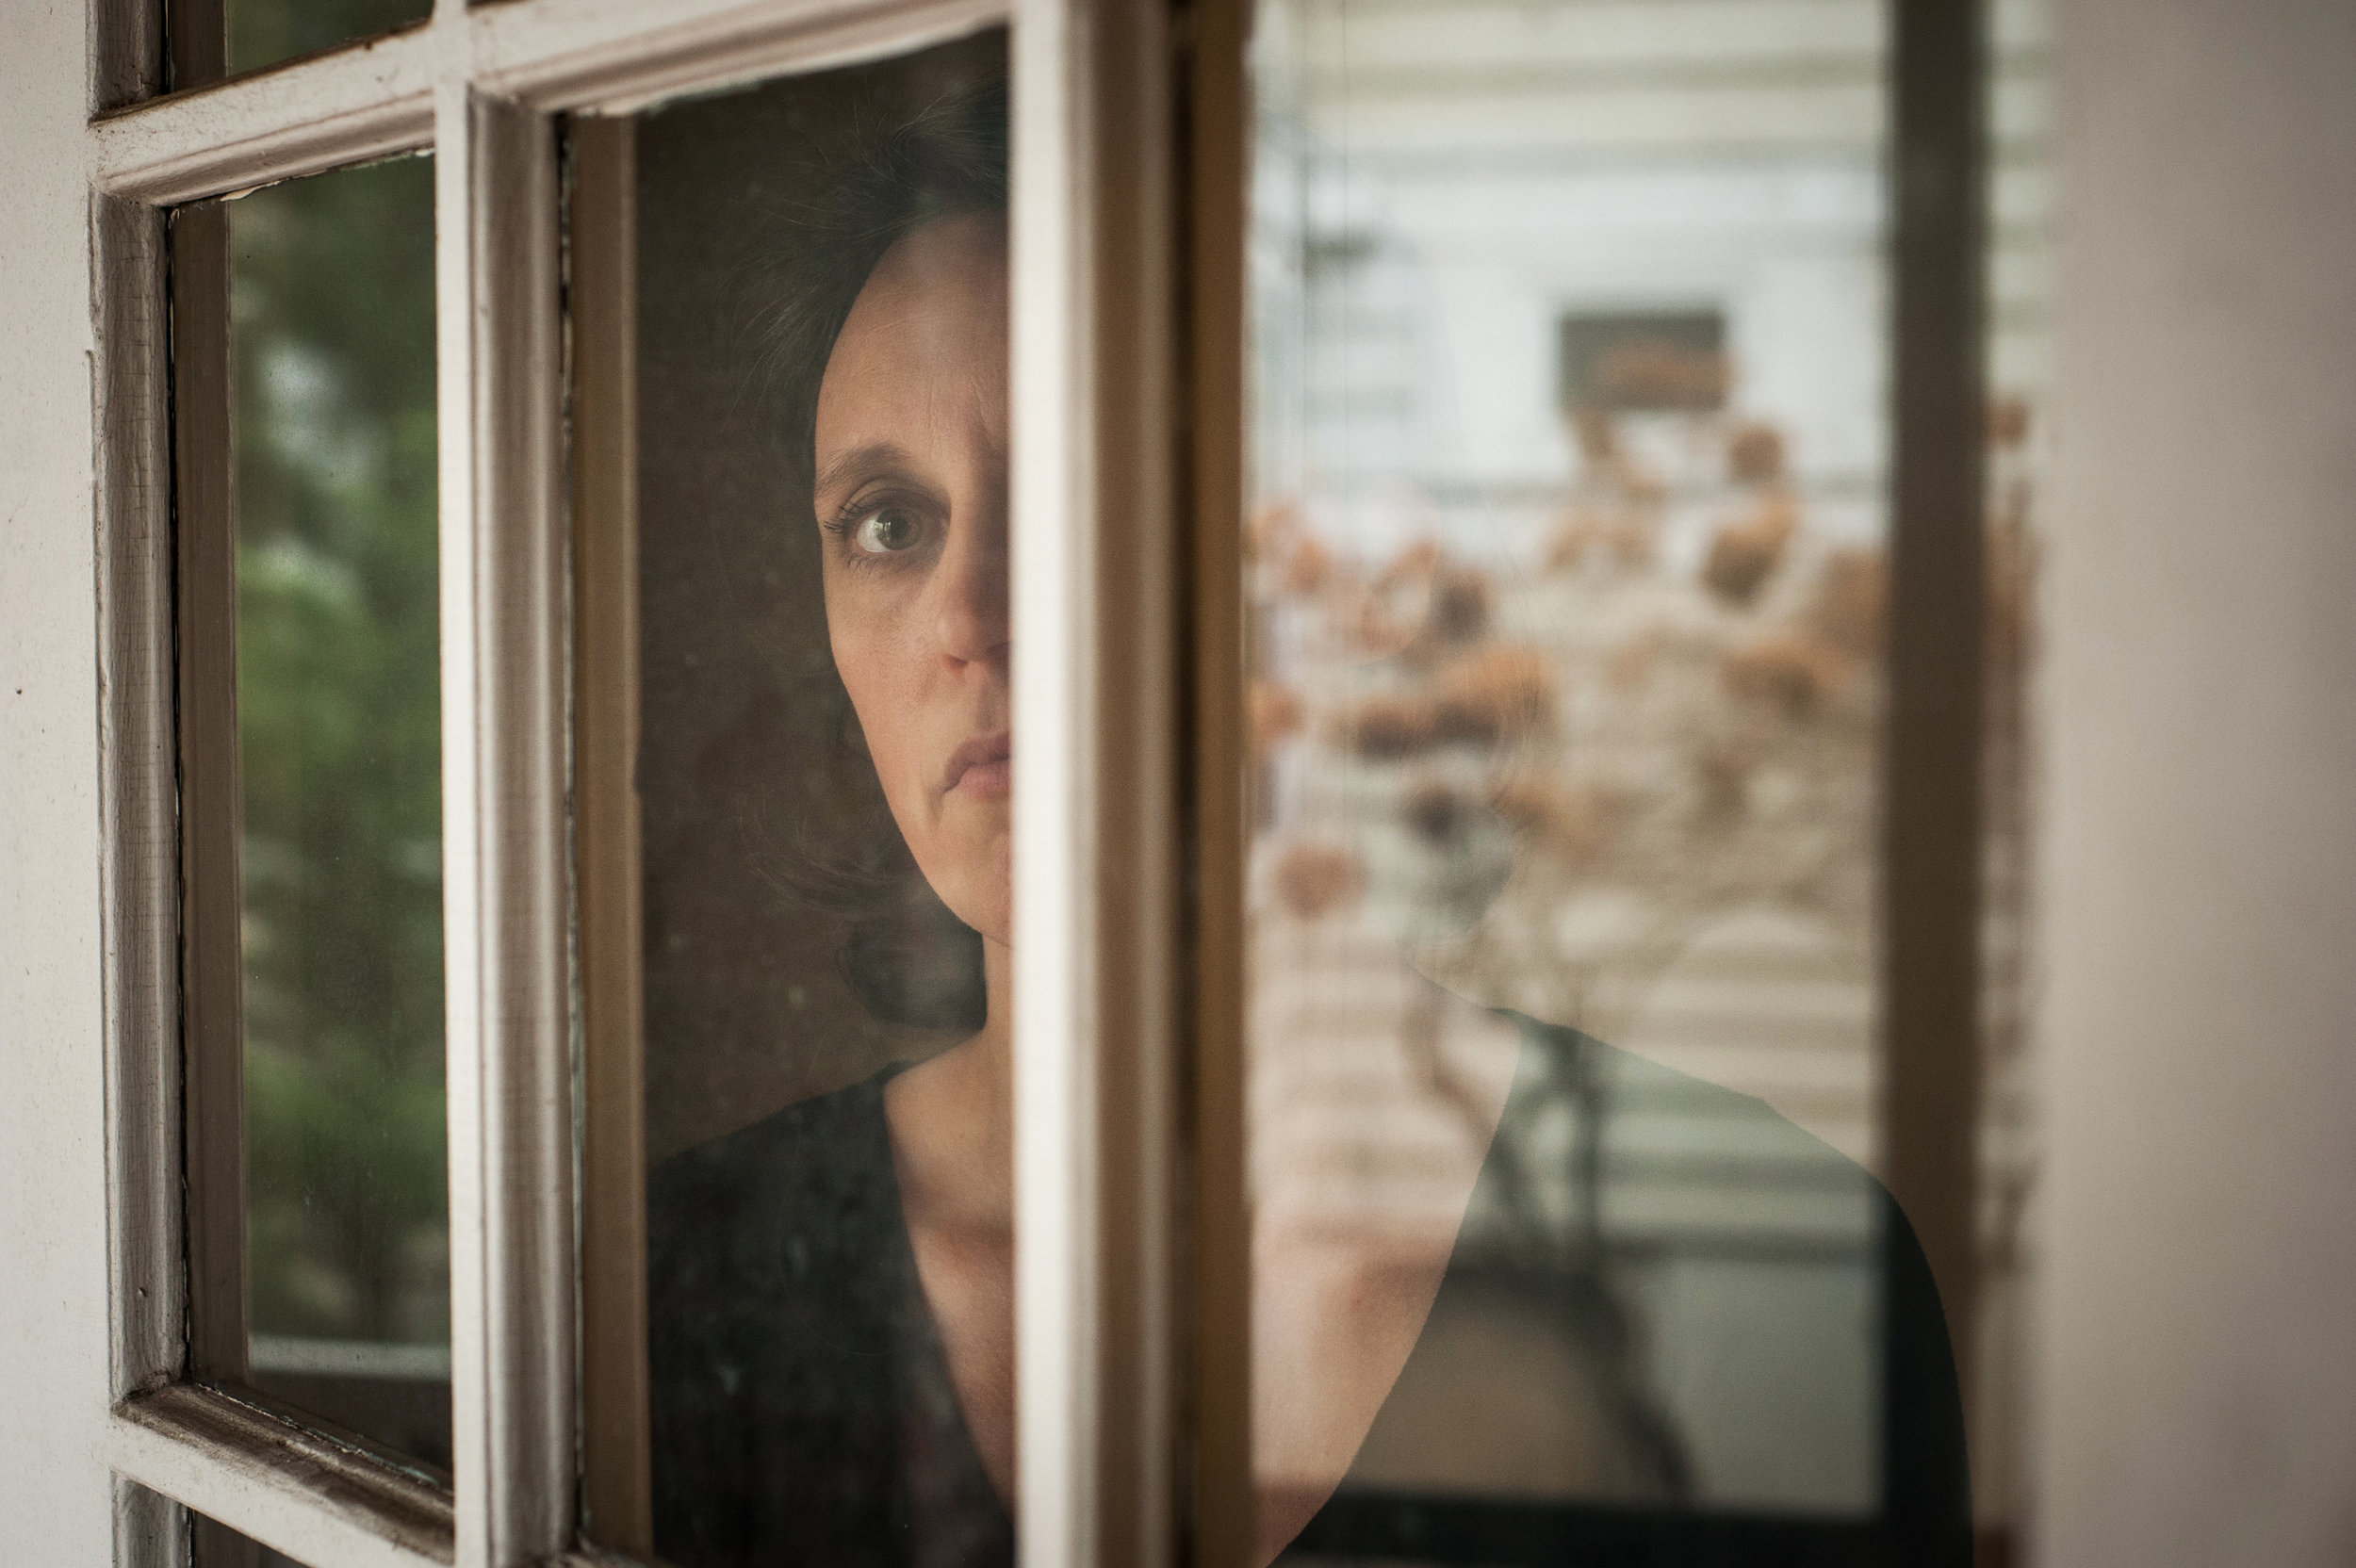 Sara Asselin at her home in New Jersey February 2018. Asselin said voice coach Peter Rofé masturbated in 2004 while she read a script about chocolate pudding. She is one of at least 16 women to come forward with accounts of sexual misconduct by Rofé. Photographed for CNN